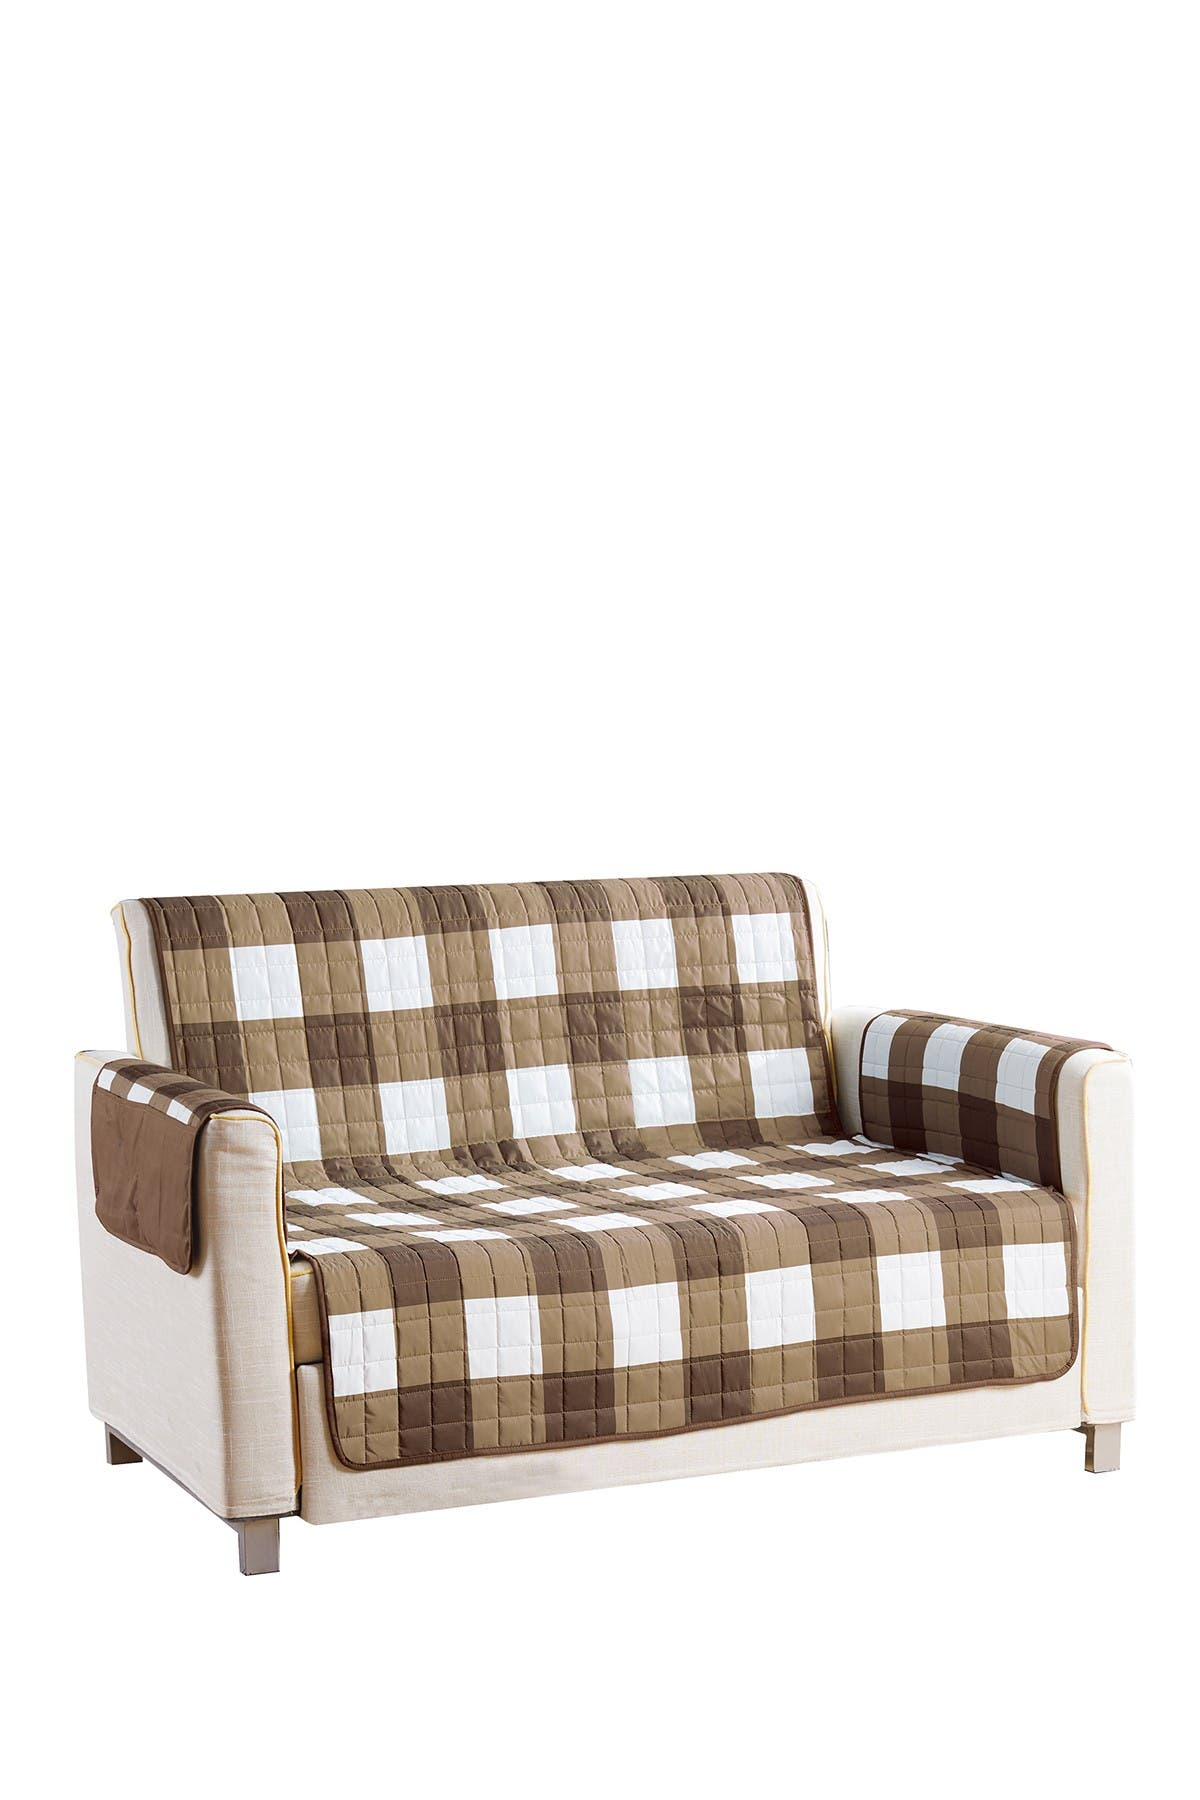 Image of Duck River Textile Taupe/Chocolate Alba Reversible Waterproof Microfiber Love Seat Cover